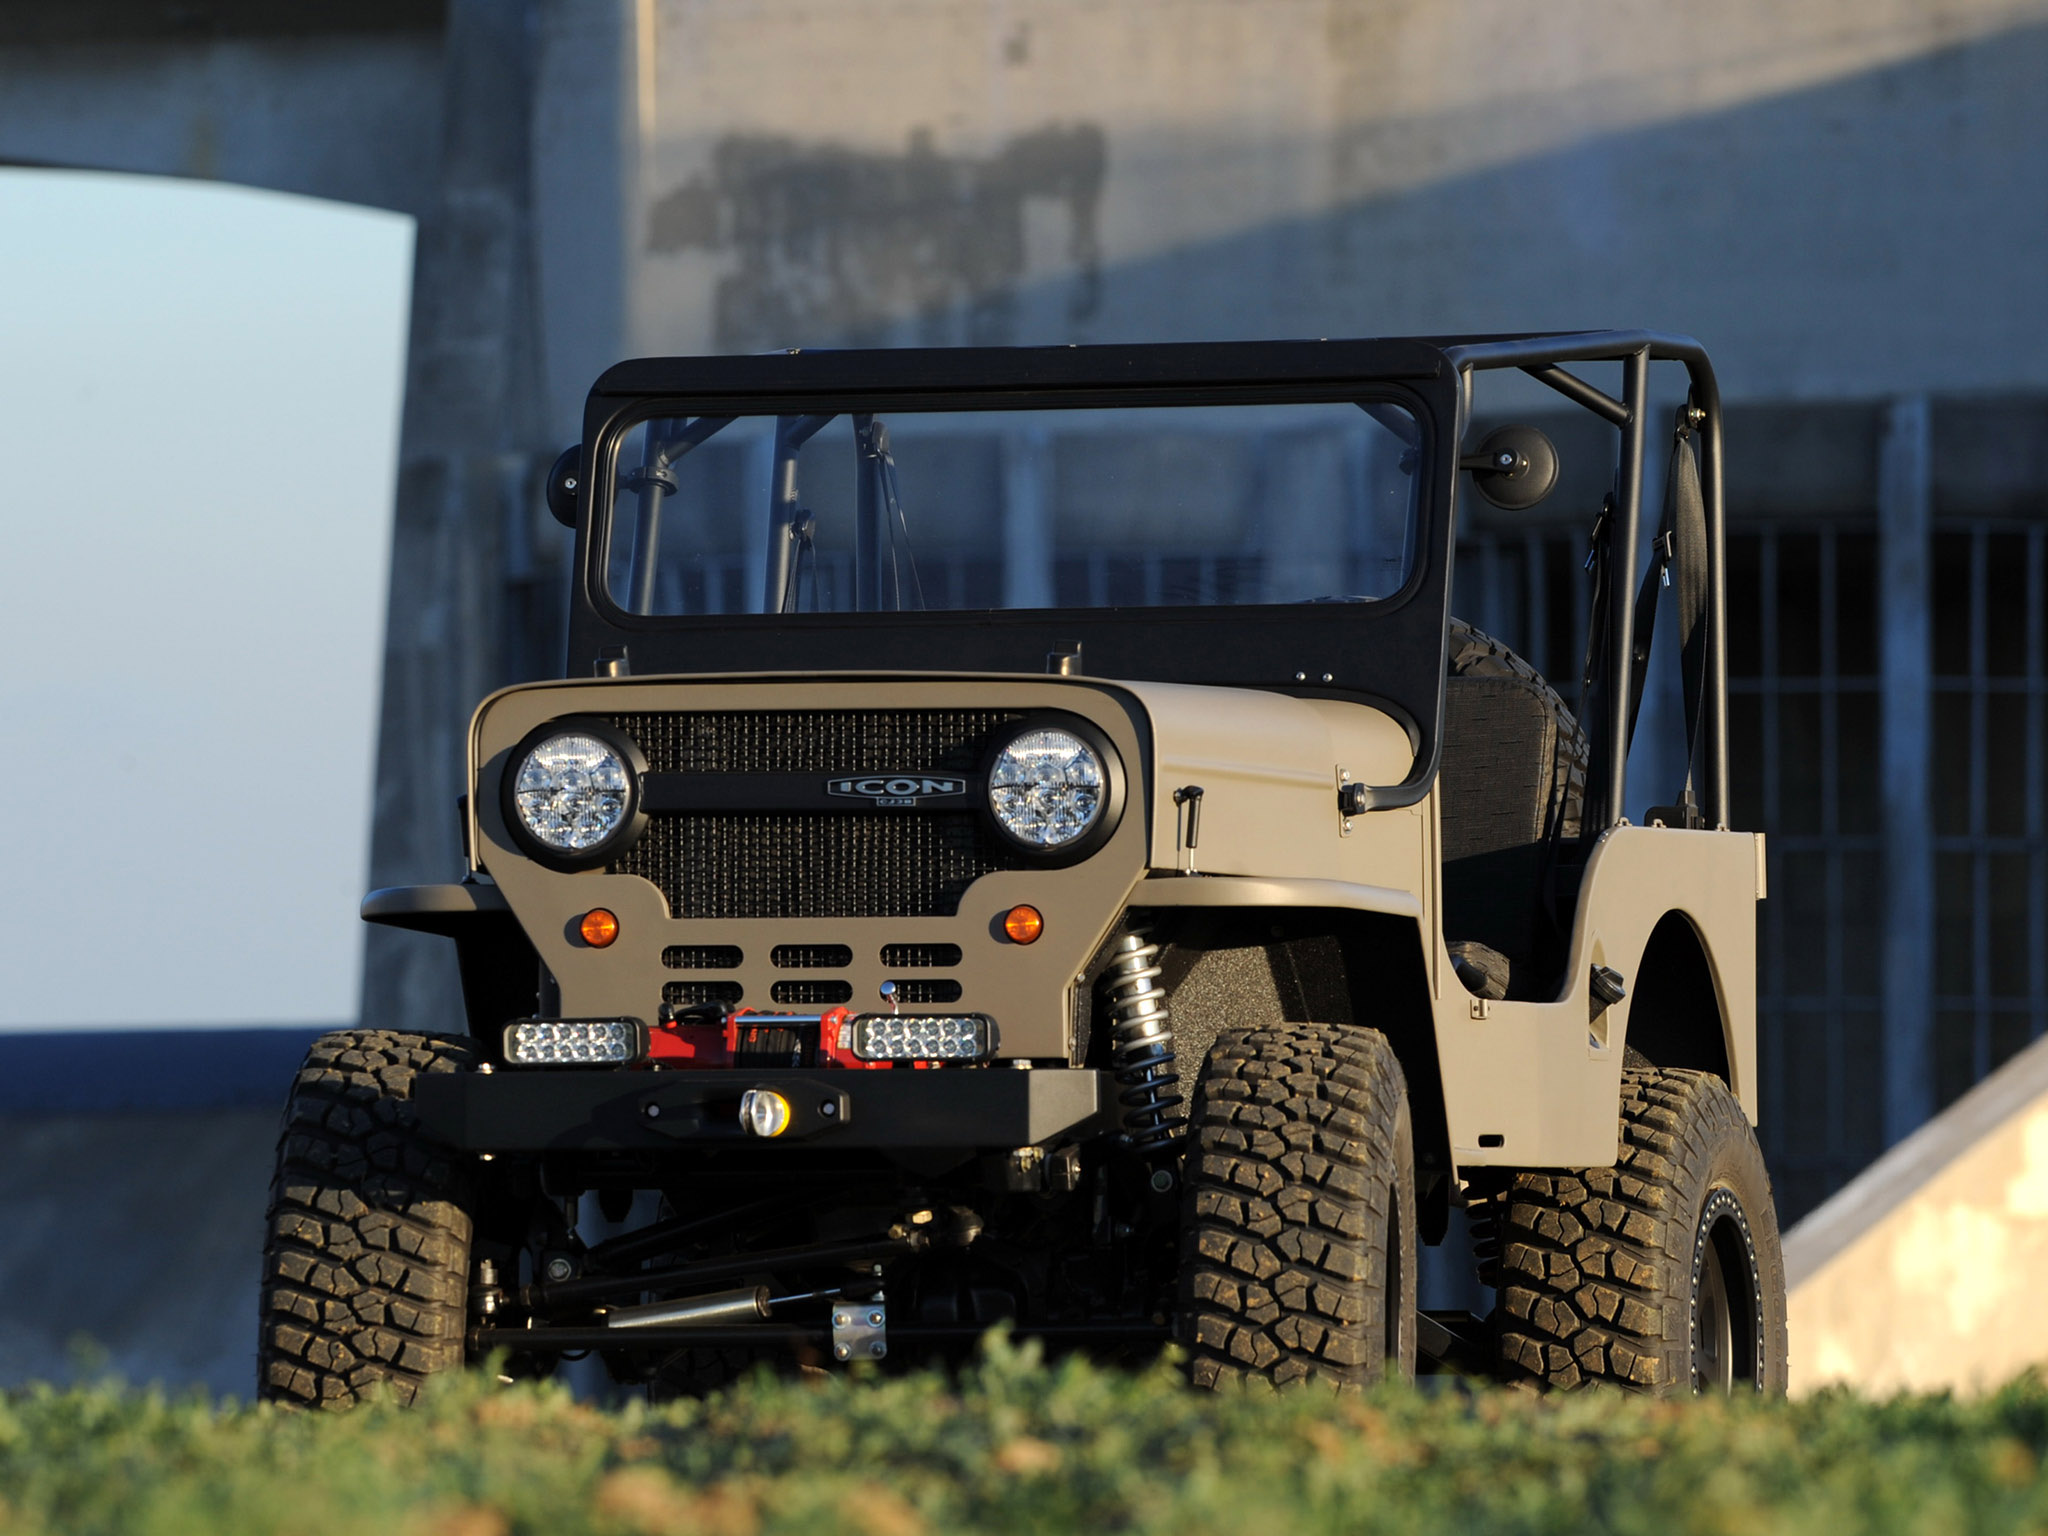 2010 Jeep CJ 3B photo - 1